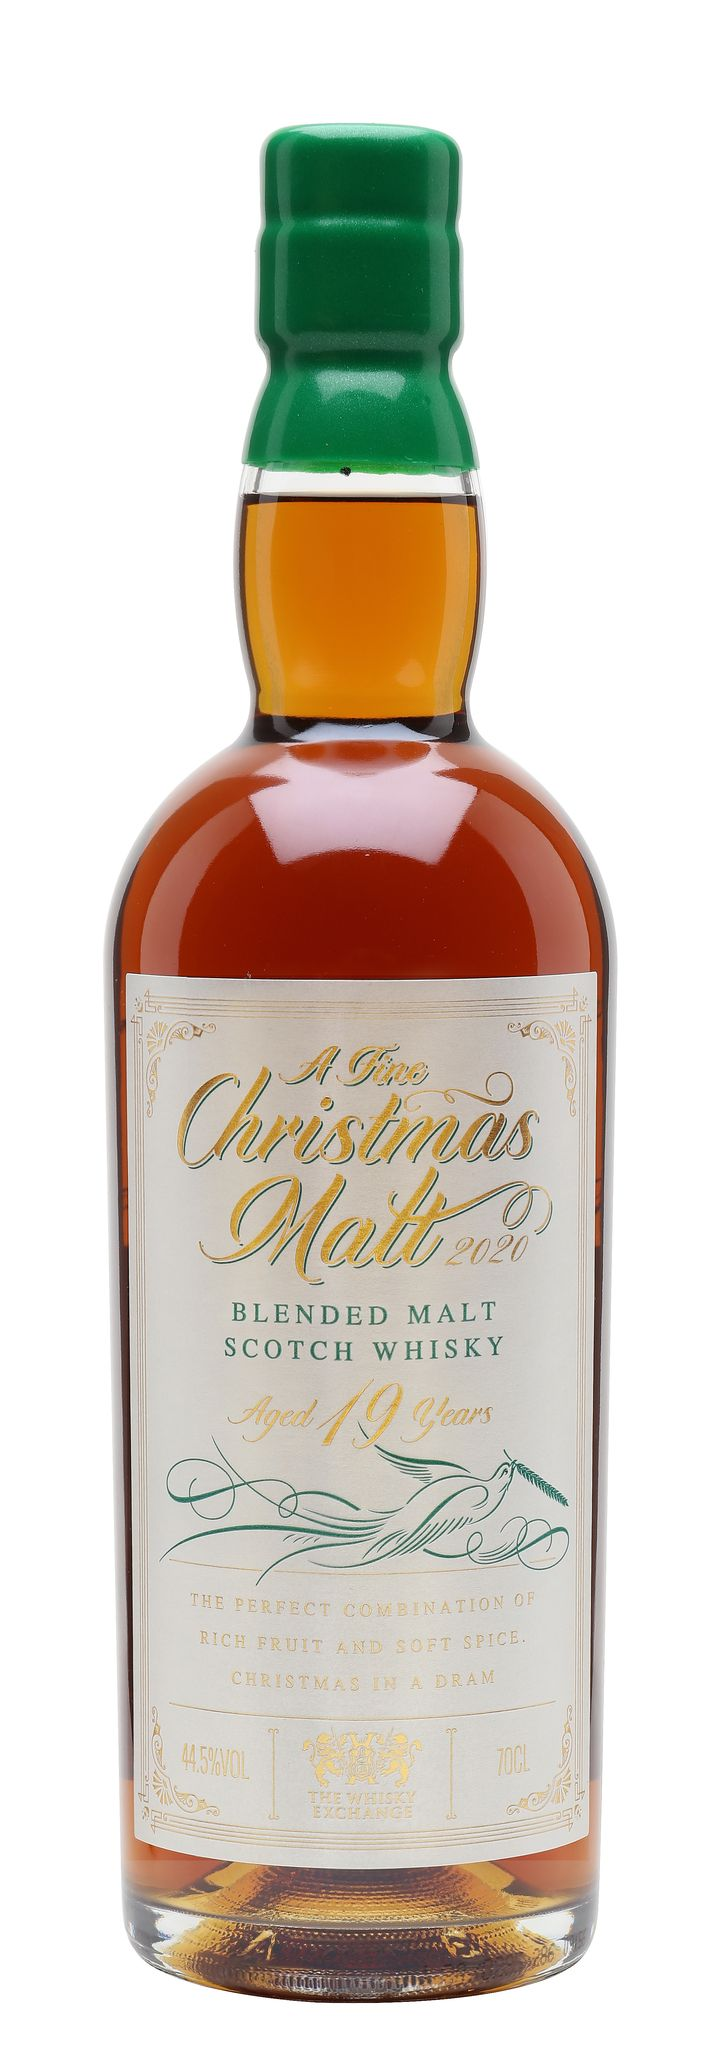 The Dramble reviews A Fine Christmas Malt 2020